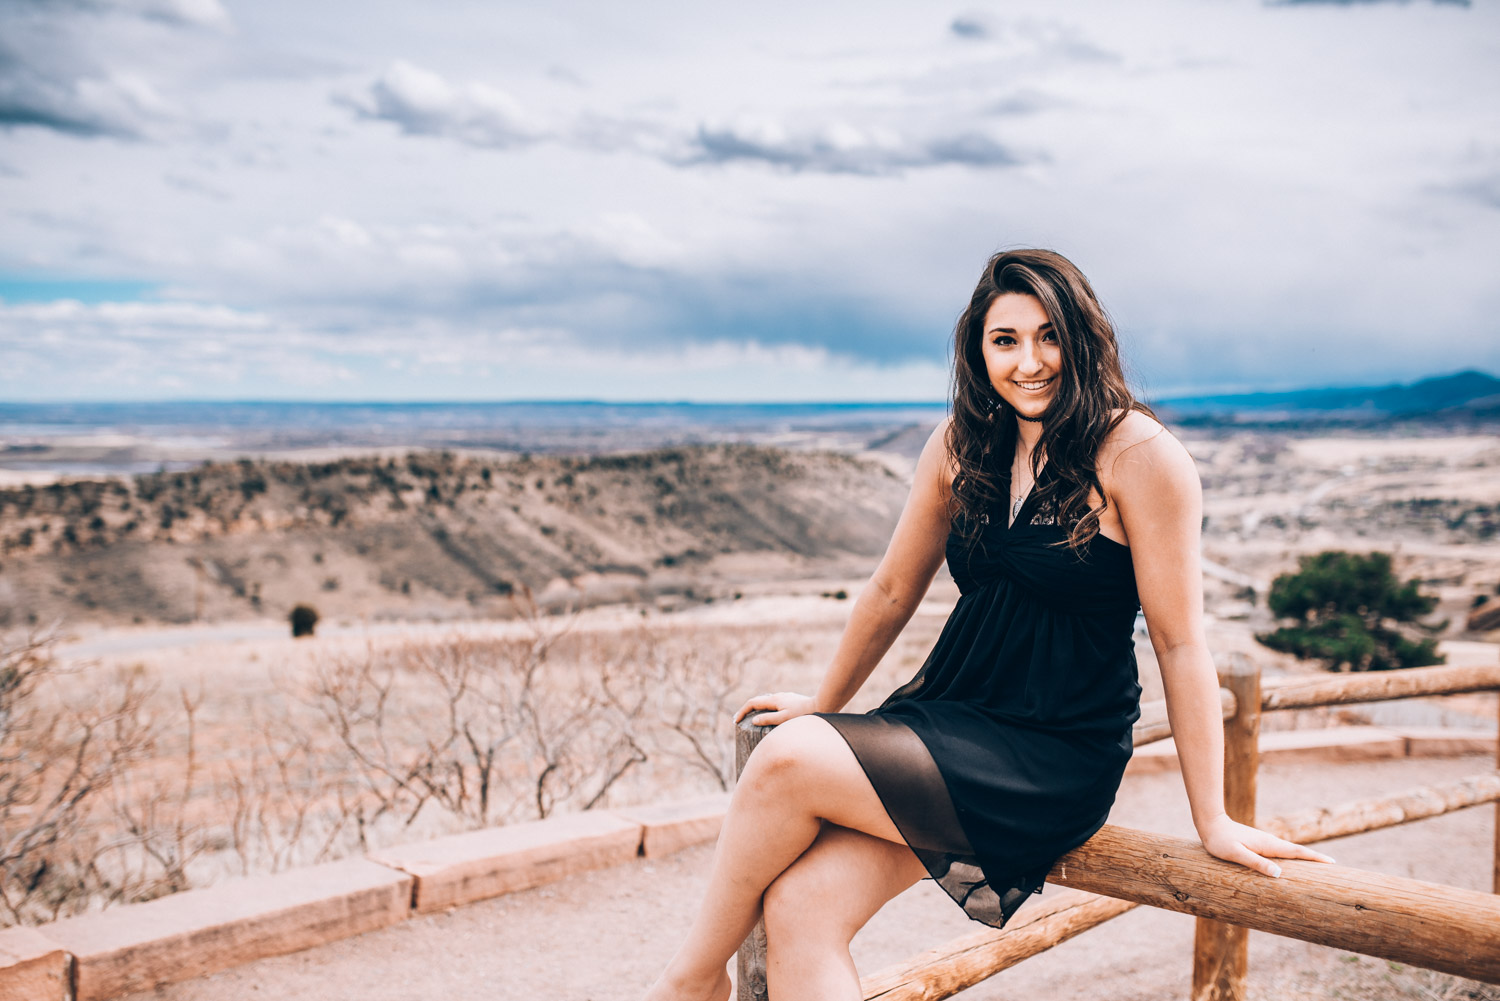 Red Rocks High School Senior Photos - Denver Colorado (18 of 24).jpg